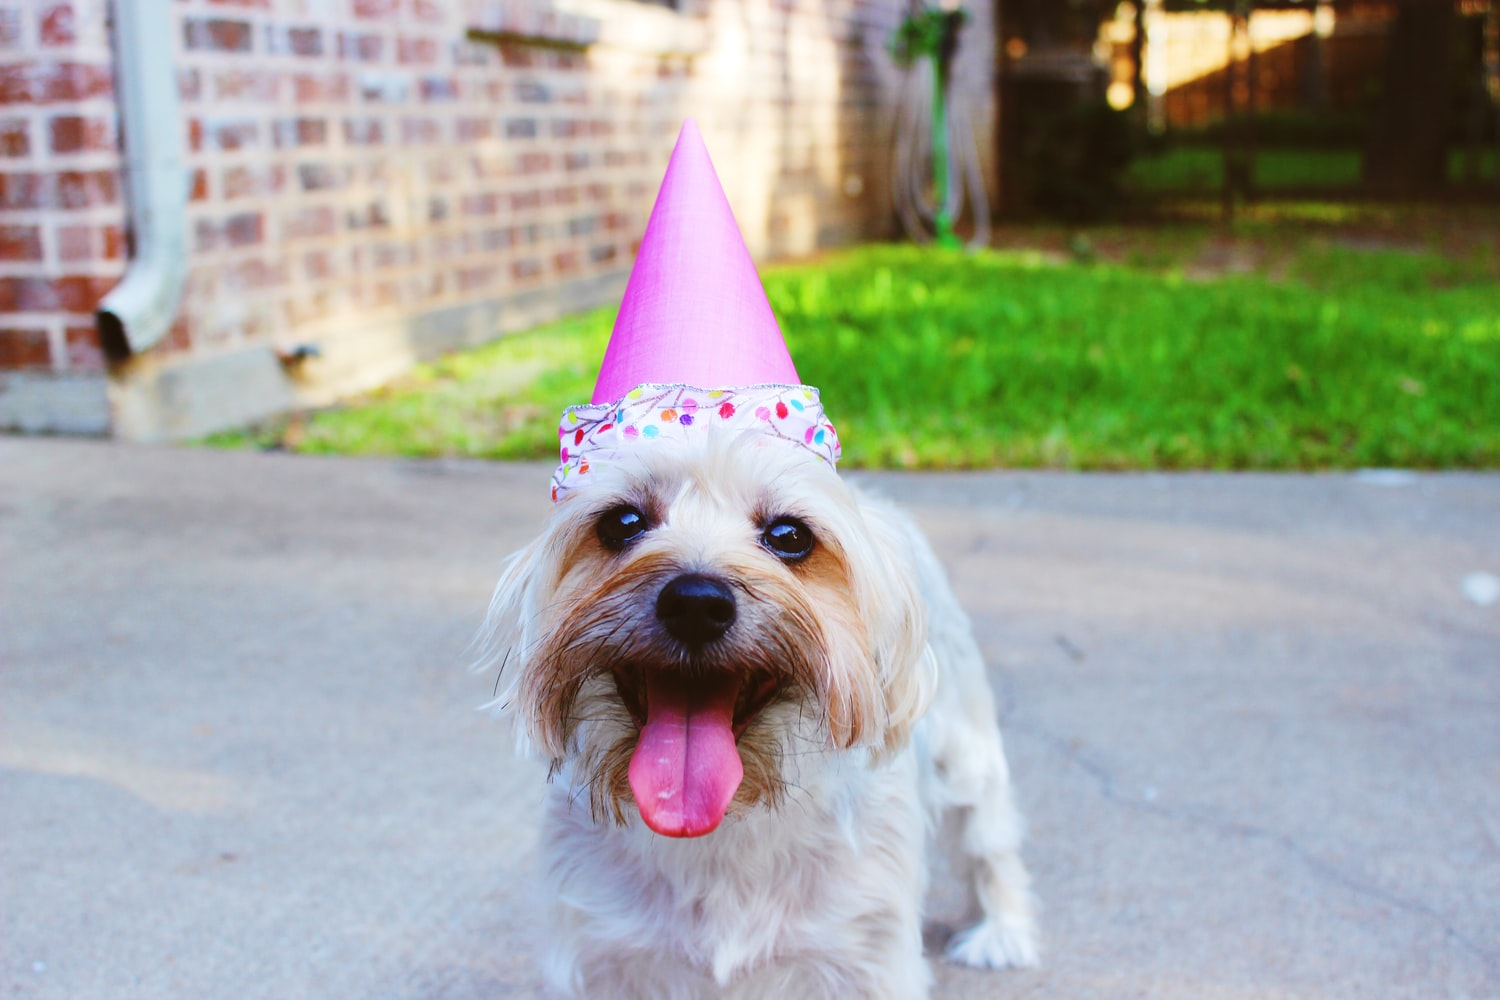 Puppy with a party hat